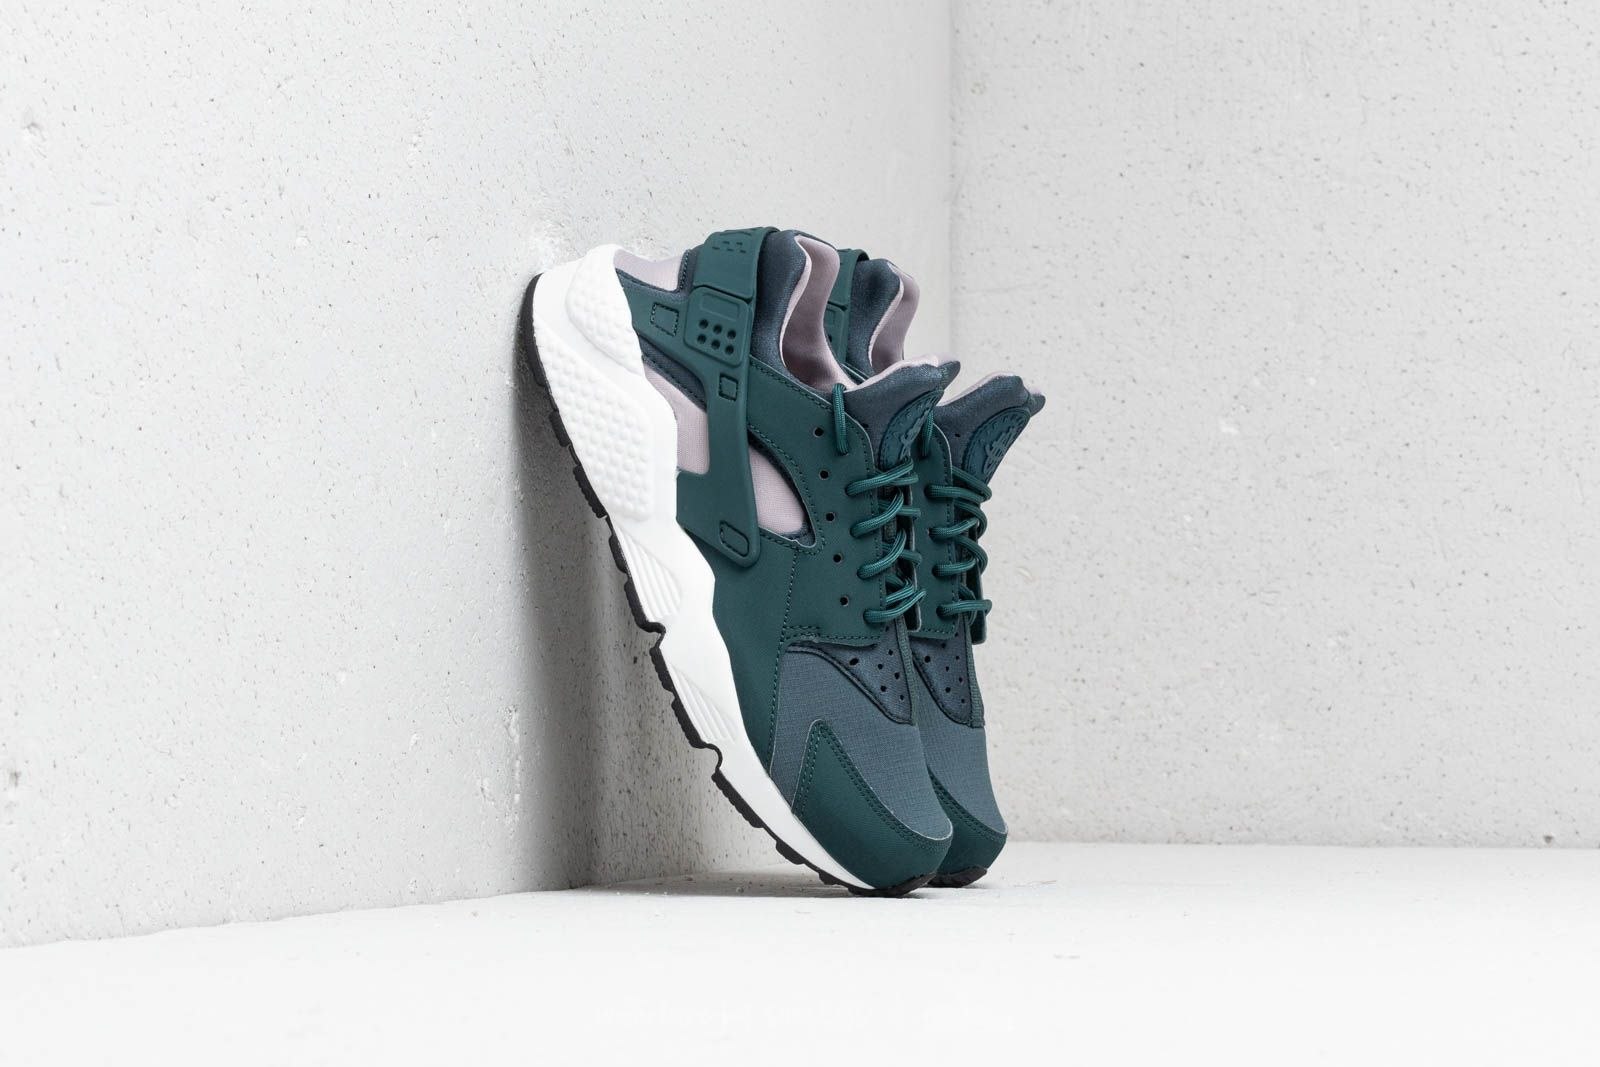 Nike Wmns Air Huarache Run Faded Spruce/ Summit White